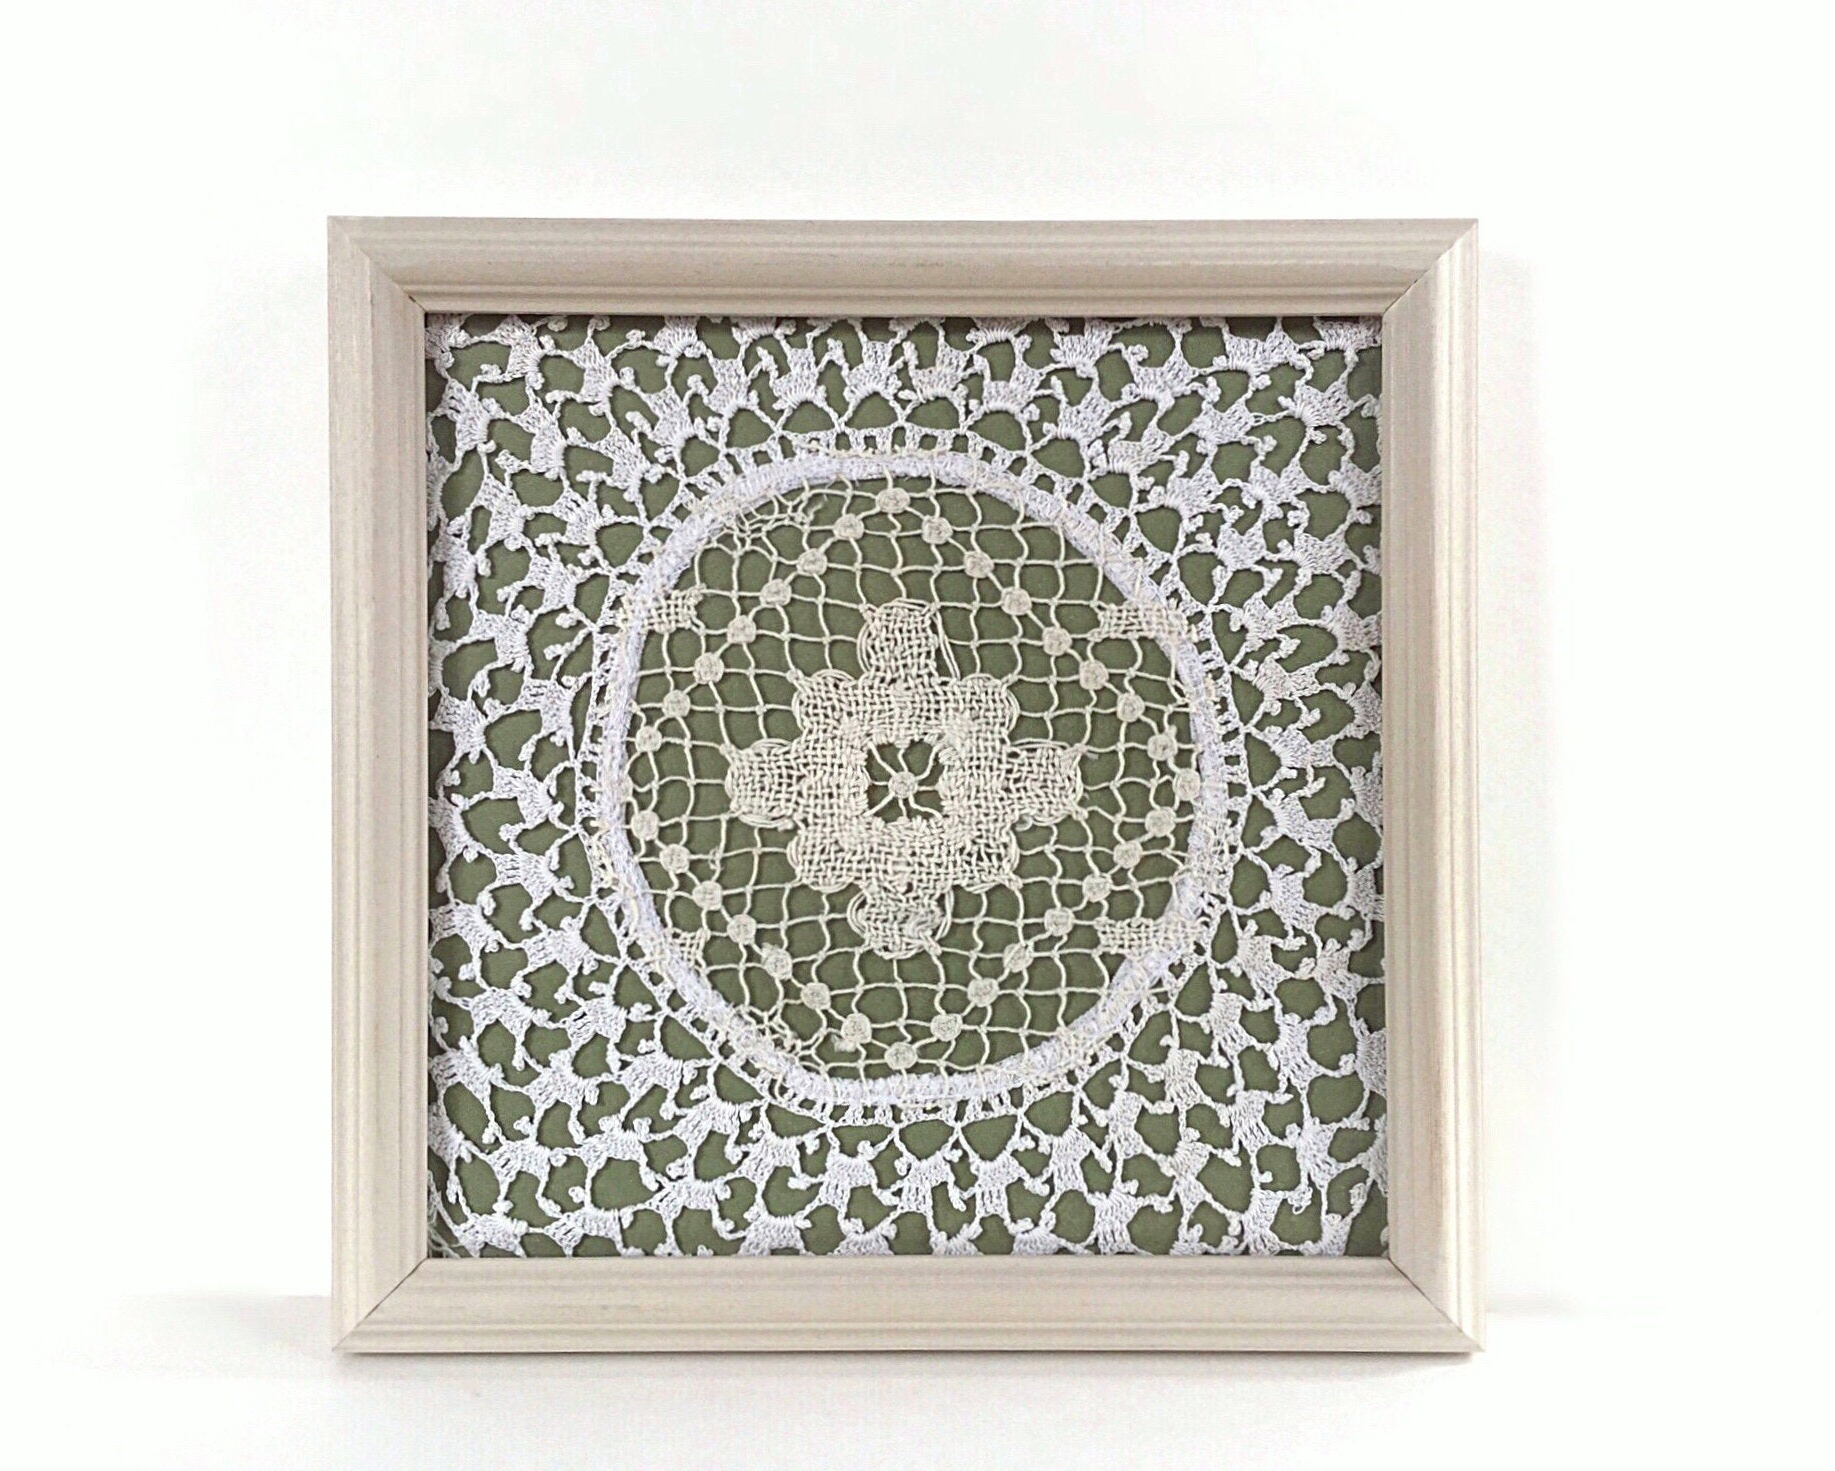 Newest Olive/gray Metal Wall Decor For Olive Green Wall Art Doily In A Frame Green Wall Decor (View 9 of 20)